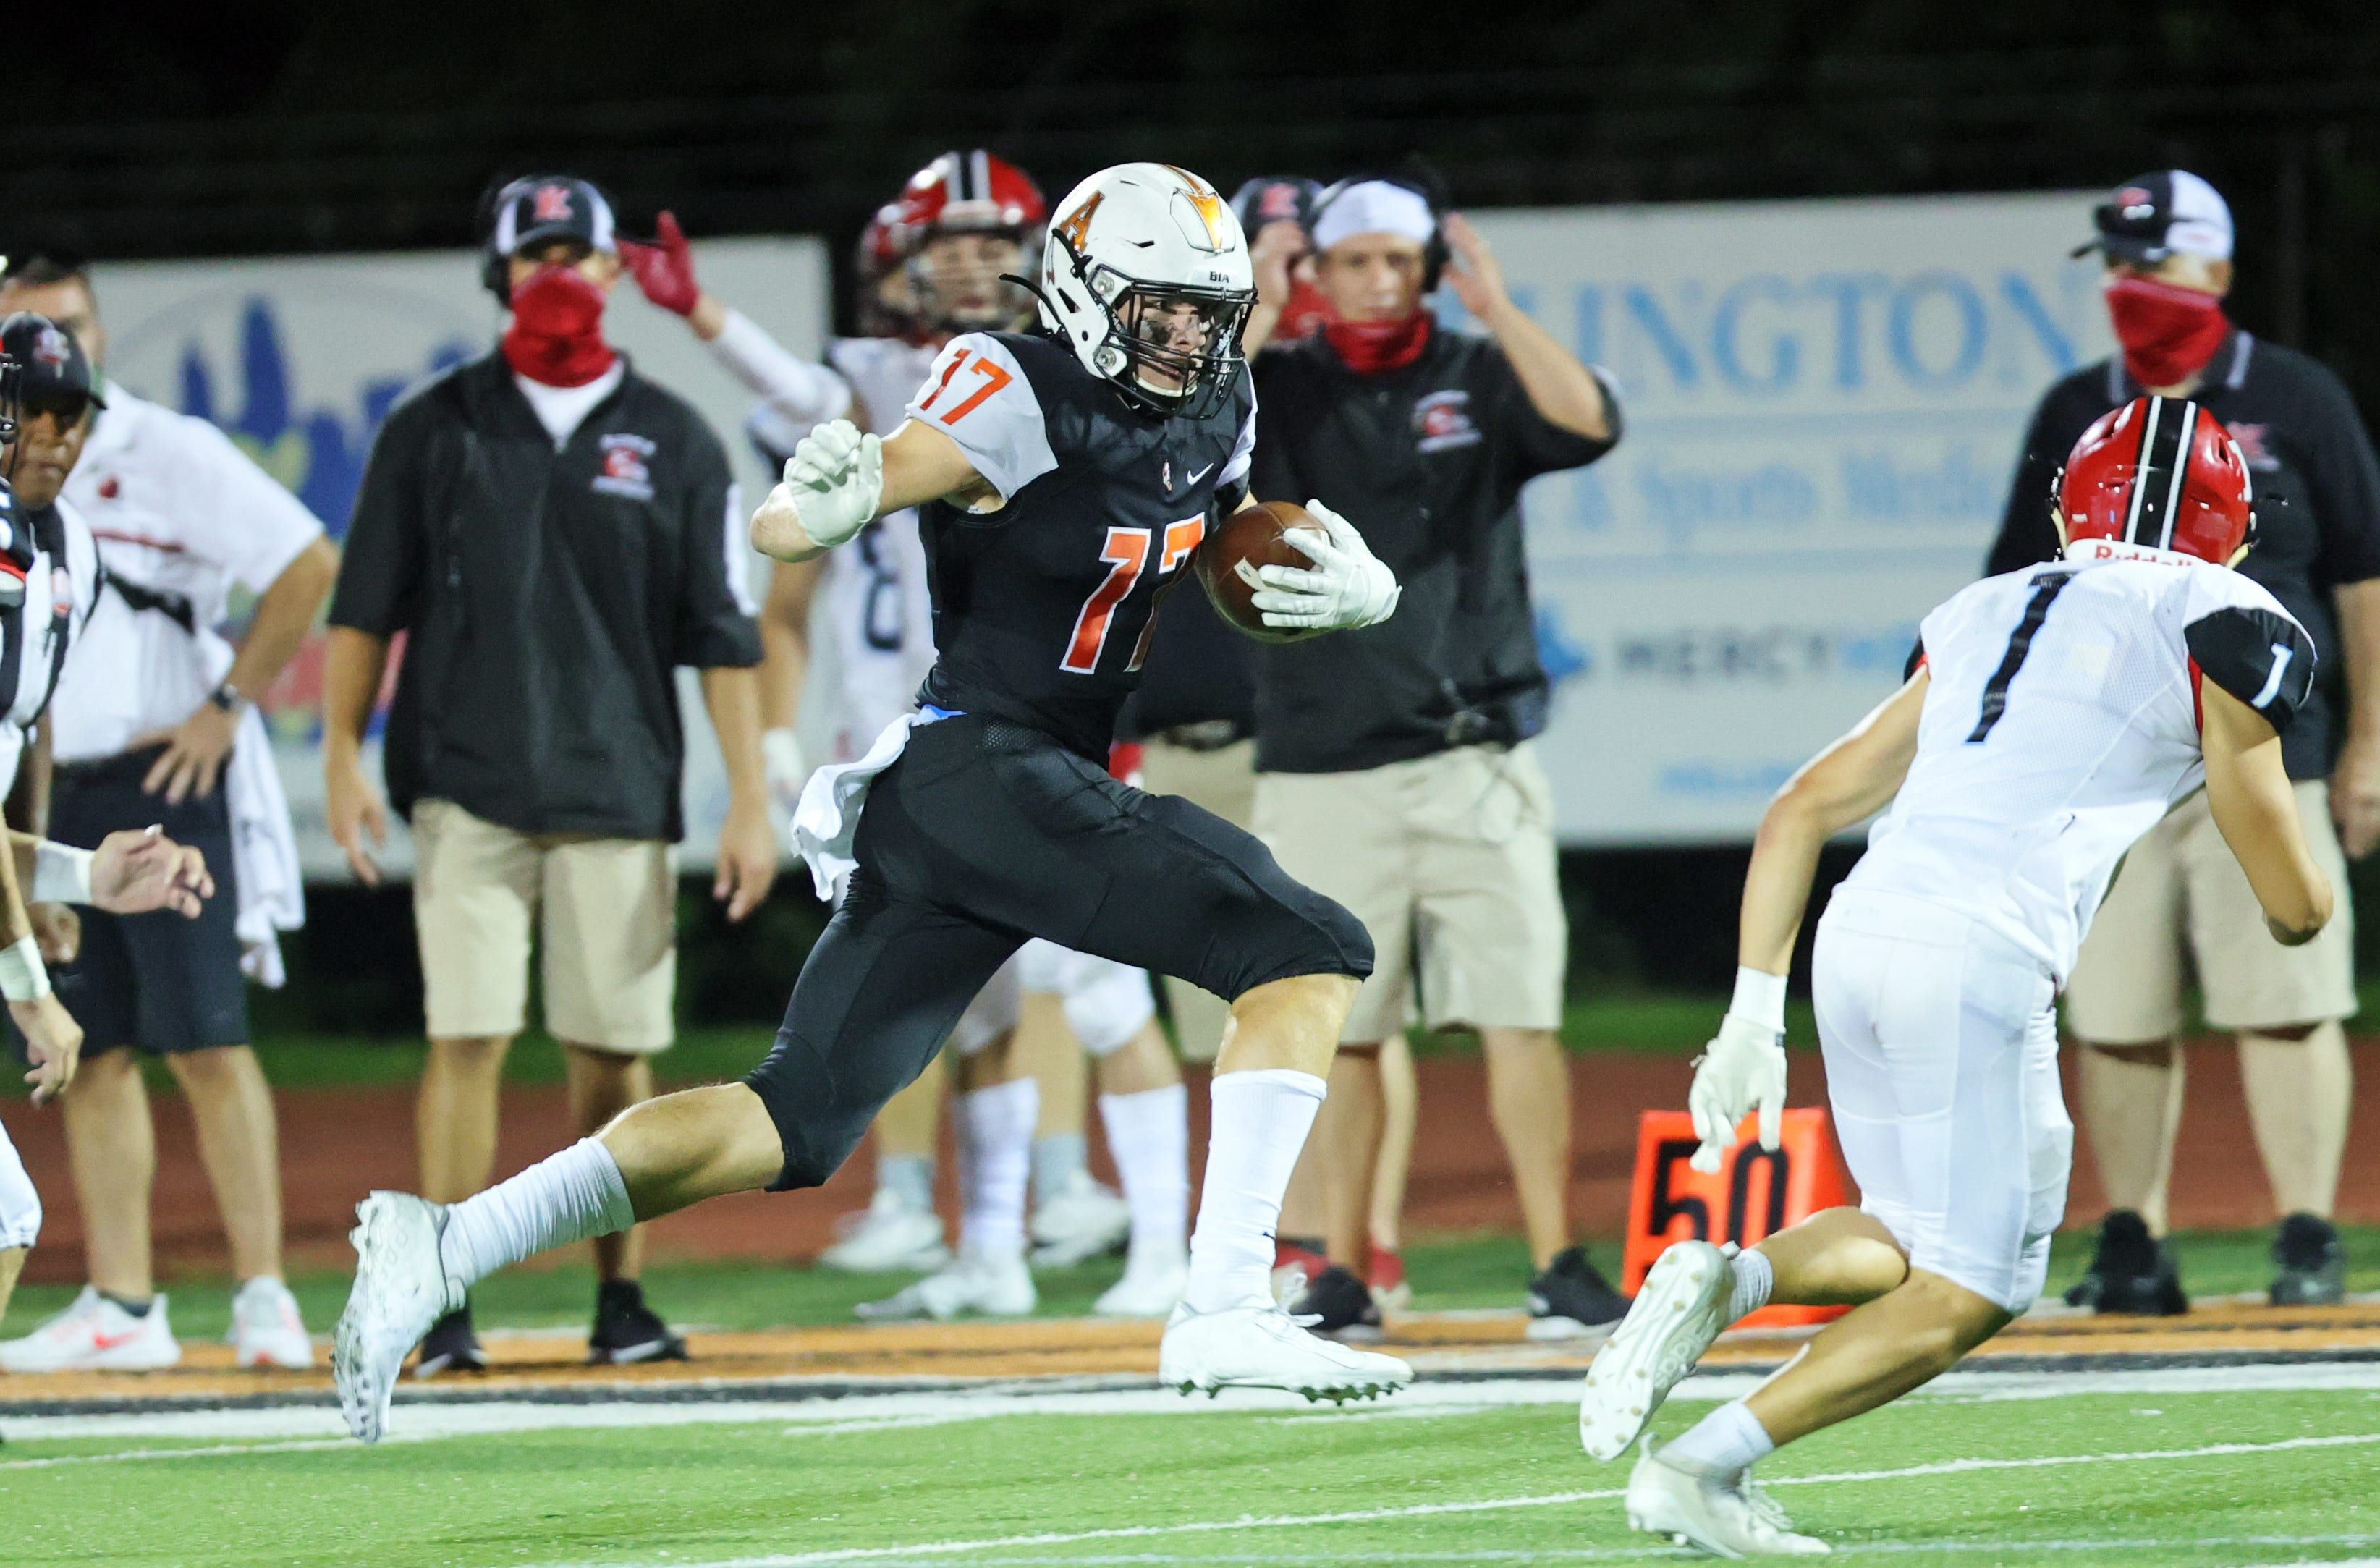 Anderson wide receiver Brody Foley runs for a long gain after a catch in the game between Kings and Anderson high schools at Anderson Sept. 5, 2020.